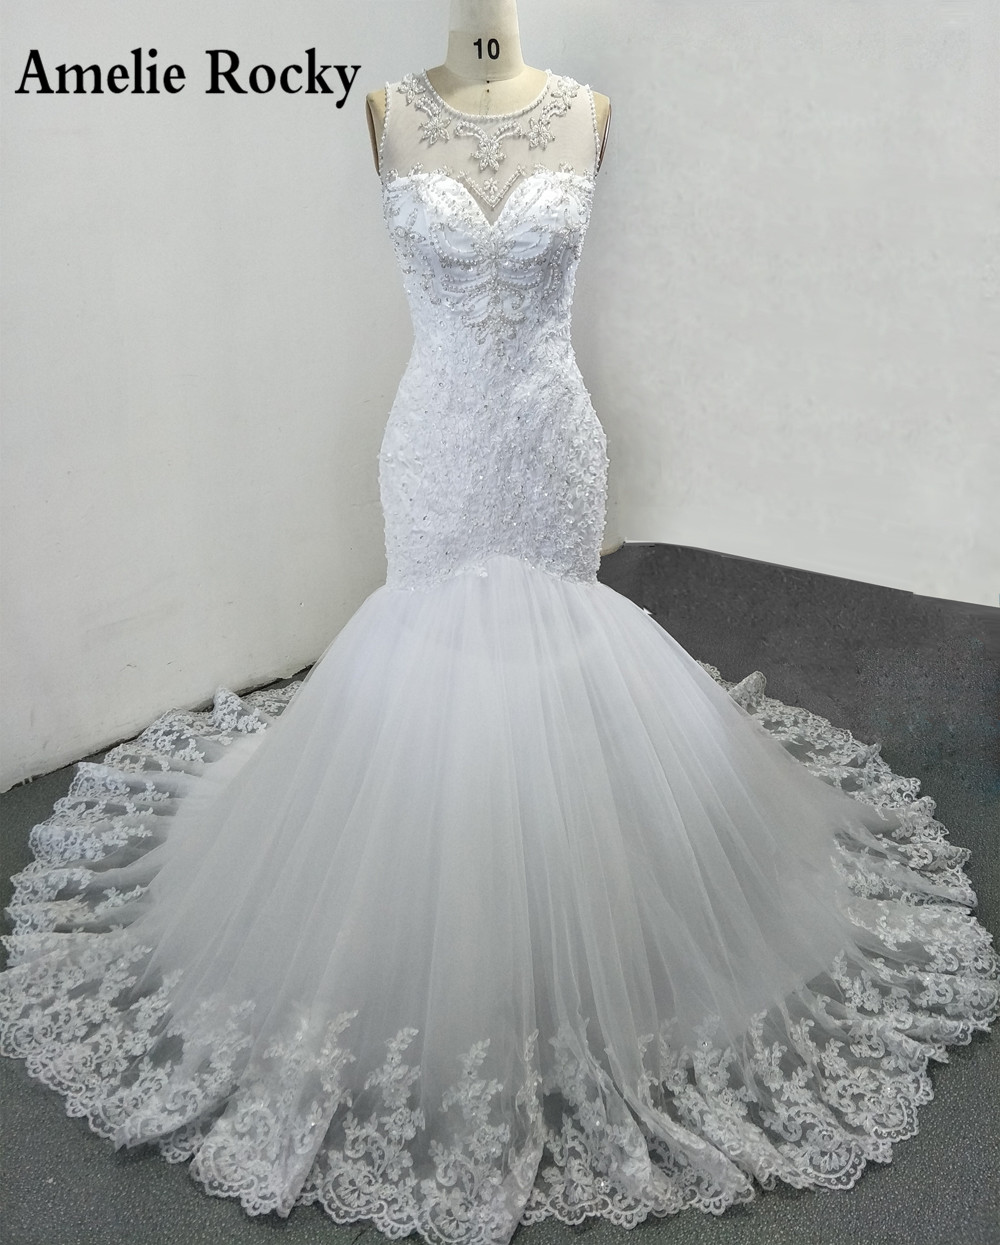 Grosir latest wedding gown Gallery - Buy Low Price latest wedding gown Lots  on Aliexpress.com 099e45761ea0